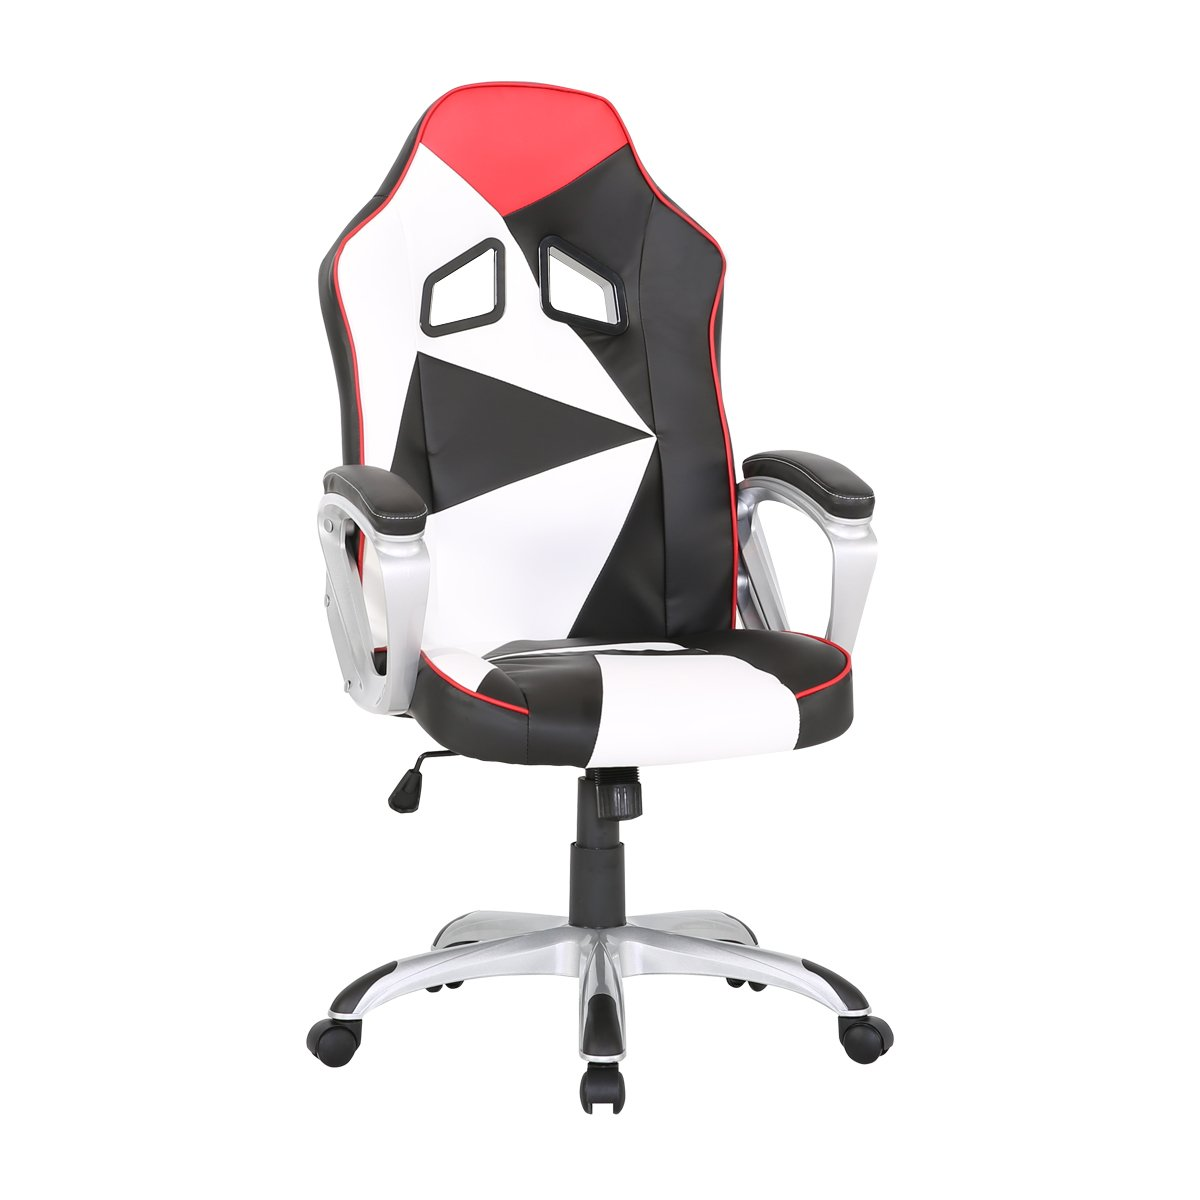 HollyHOME High Back PU Leather Racing Style Office Chair, Black and White